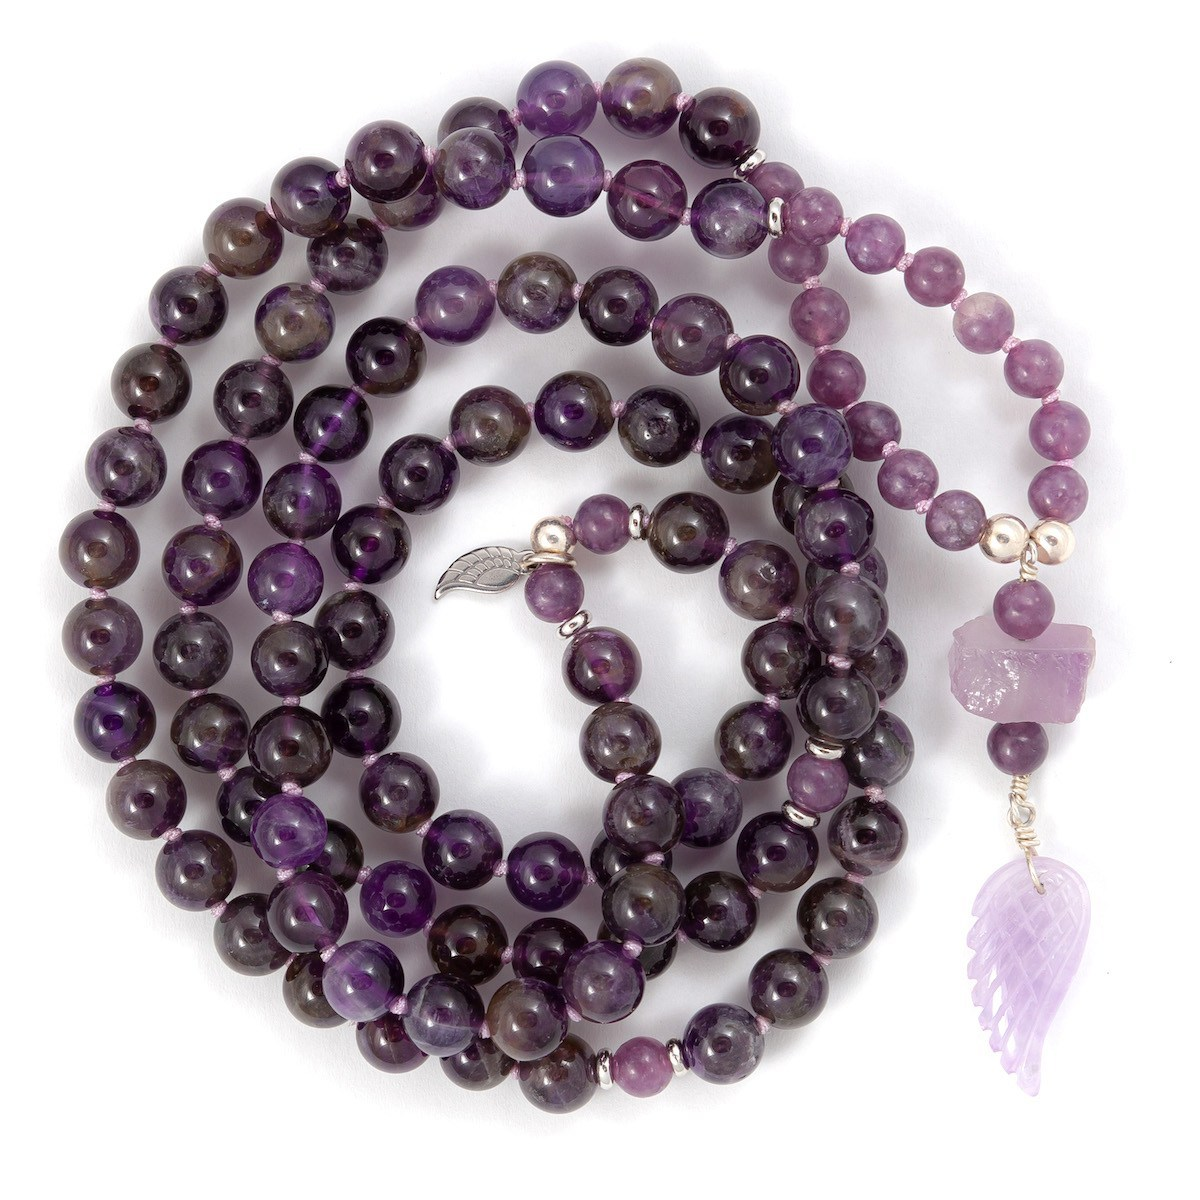 Amethyst & Lepidolite Mala - Intuition:PeaceR940.00